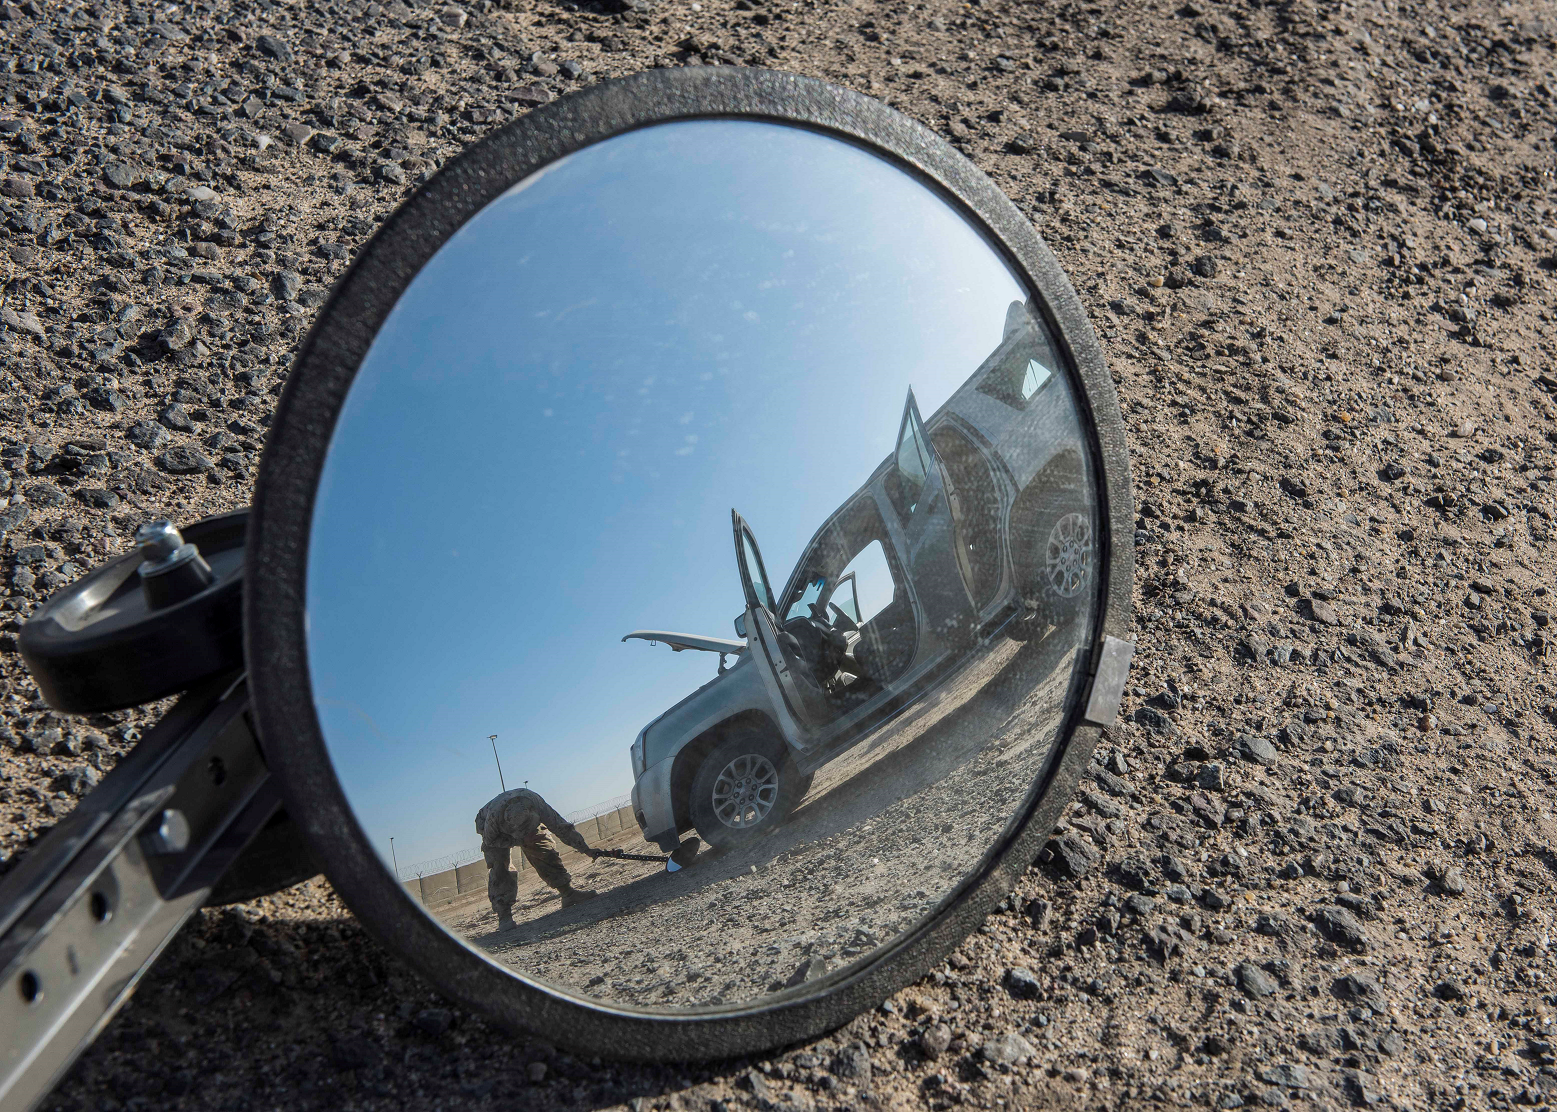 A Canadian Armed forces member of Joint Task force-Iraq searches a vehicle during Operation IMPACT at Camp Canada, Kuwait on December 15, 2016. (Photo: Op Impact, DND)